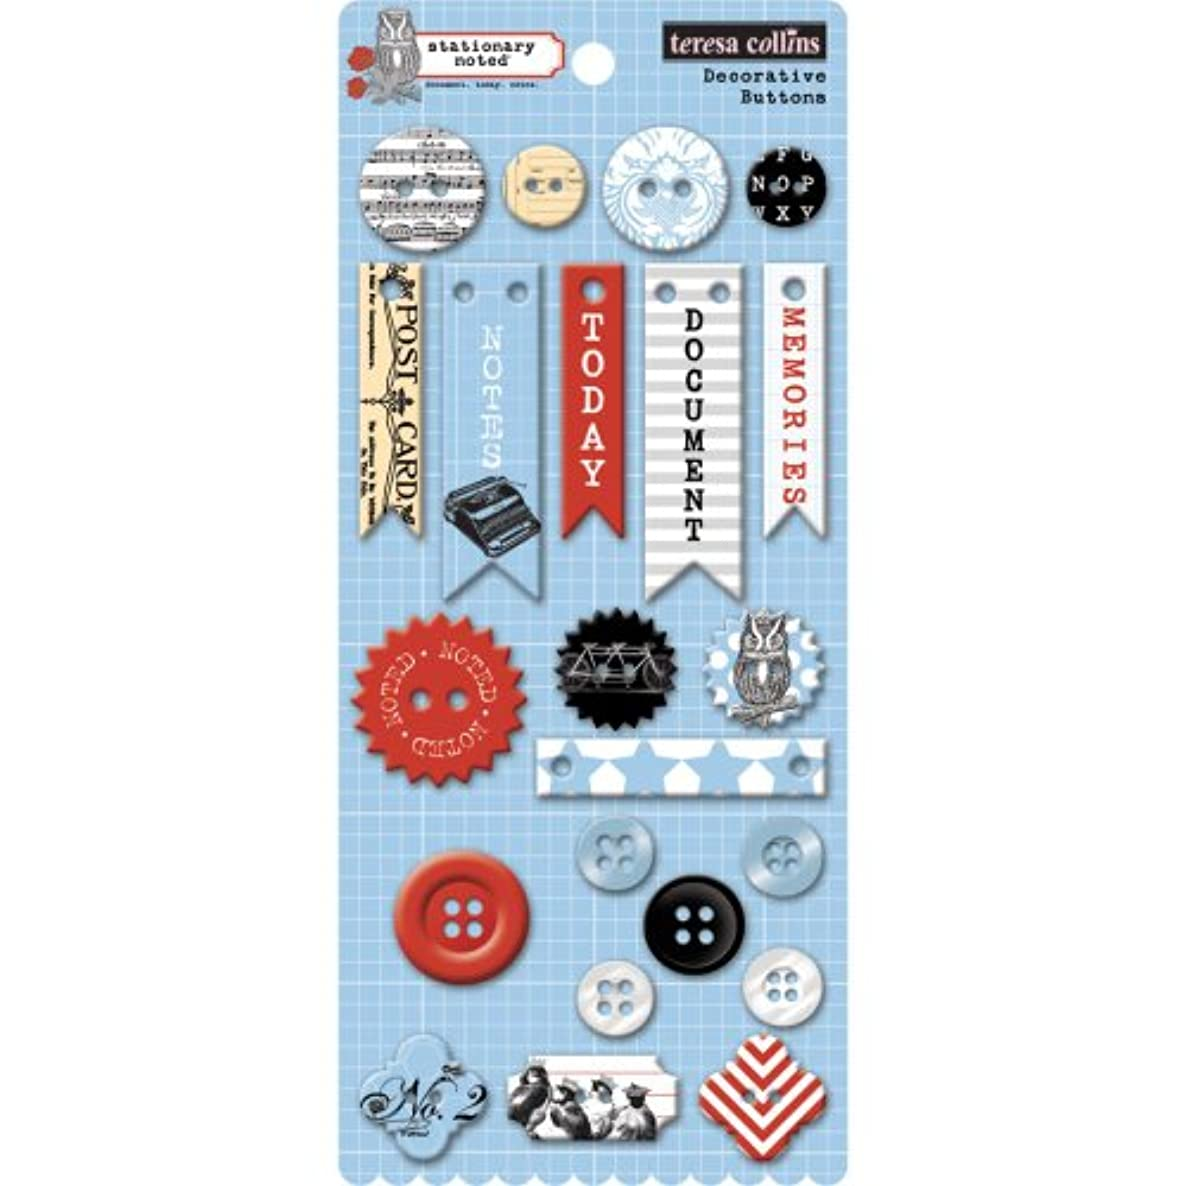 Teresa Collins Stationary Noted Decorative Buttons 22/Pkg-16 Chipboard, 6 Plastic